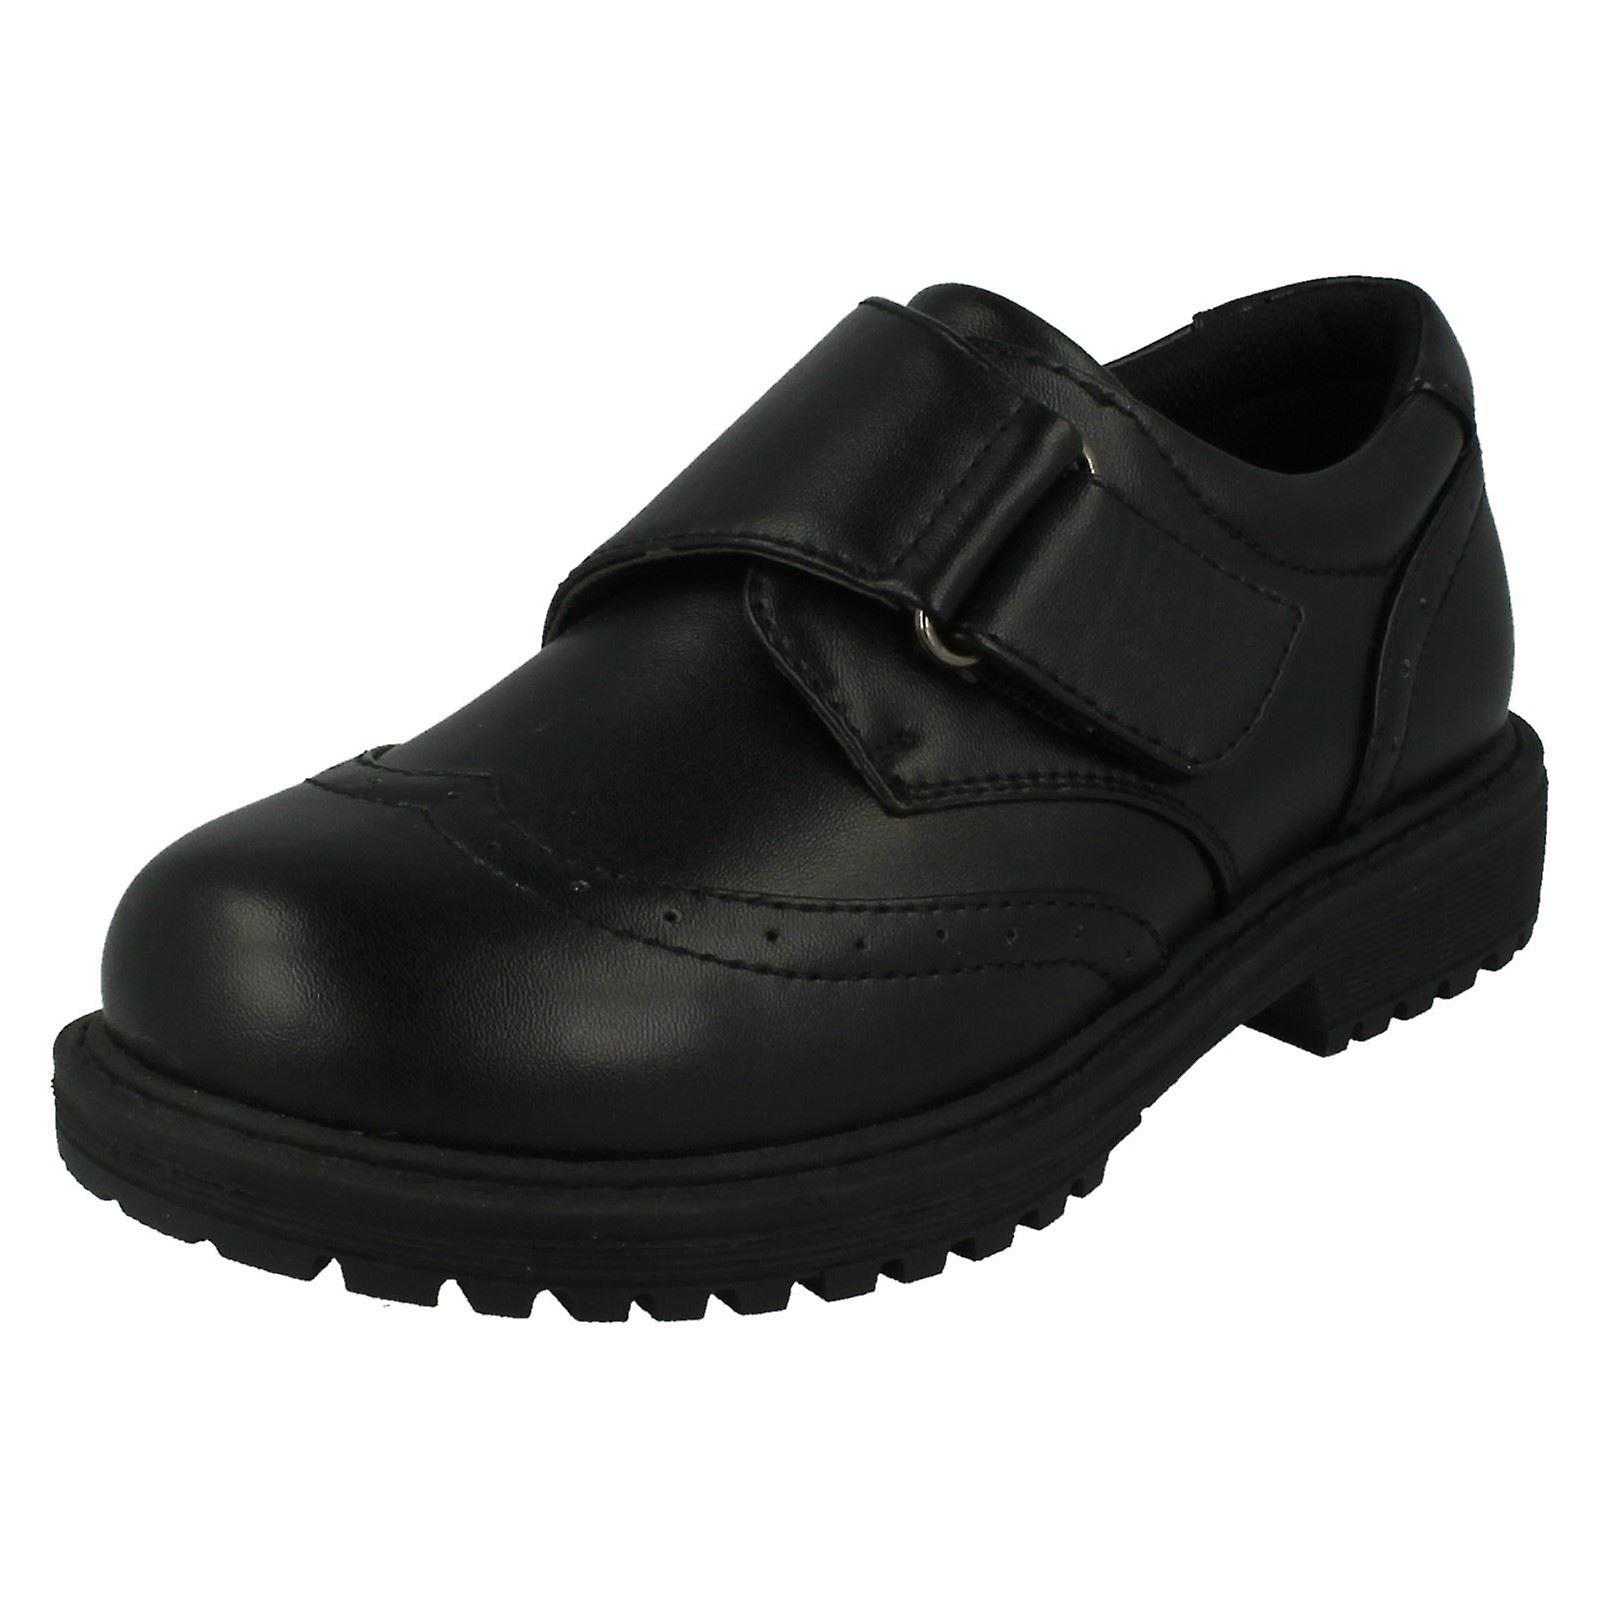 Boys Cool For School School School For Shoes-Structured Fashion-Men's/Women's ec2be0